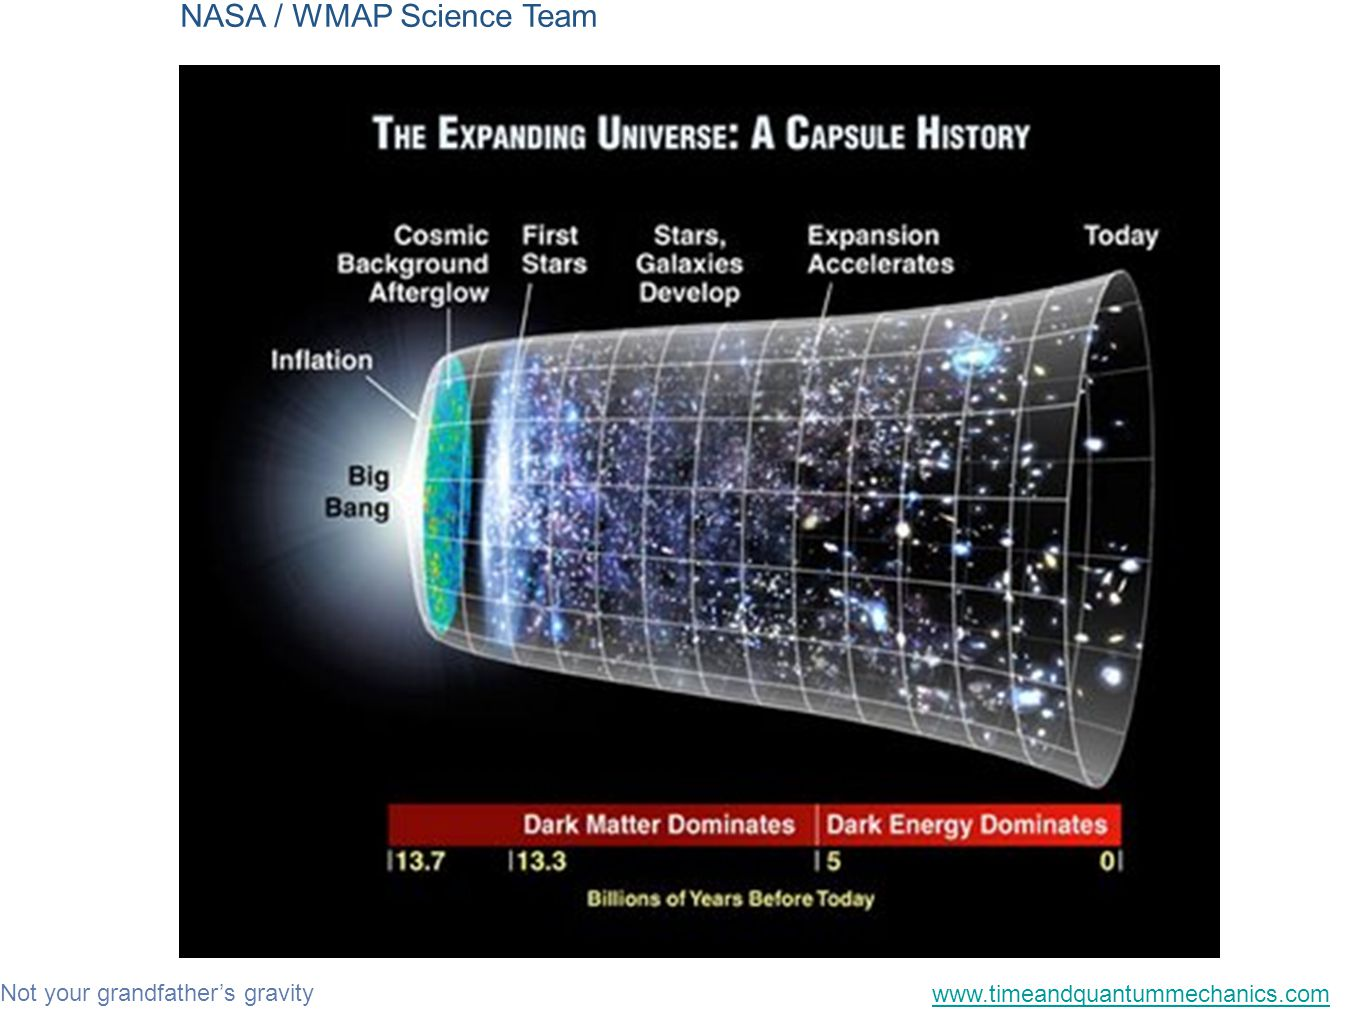 Not your grandfather's gravity www.timeandquantummechanics.com NASA / WMAP Science Team